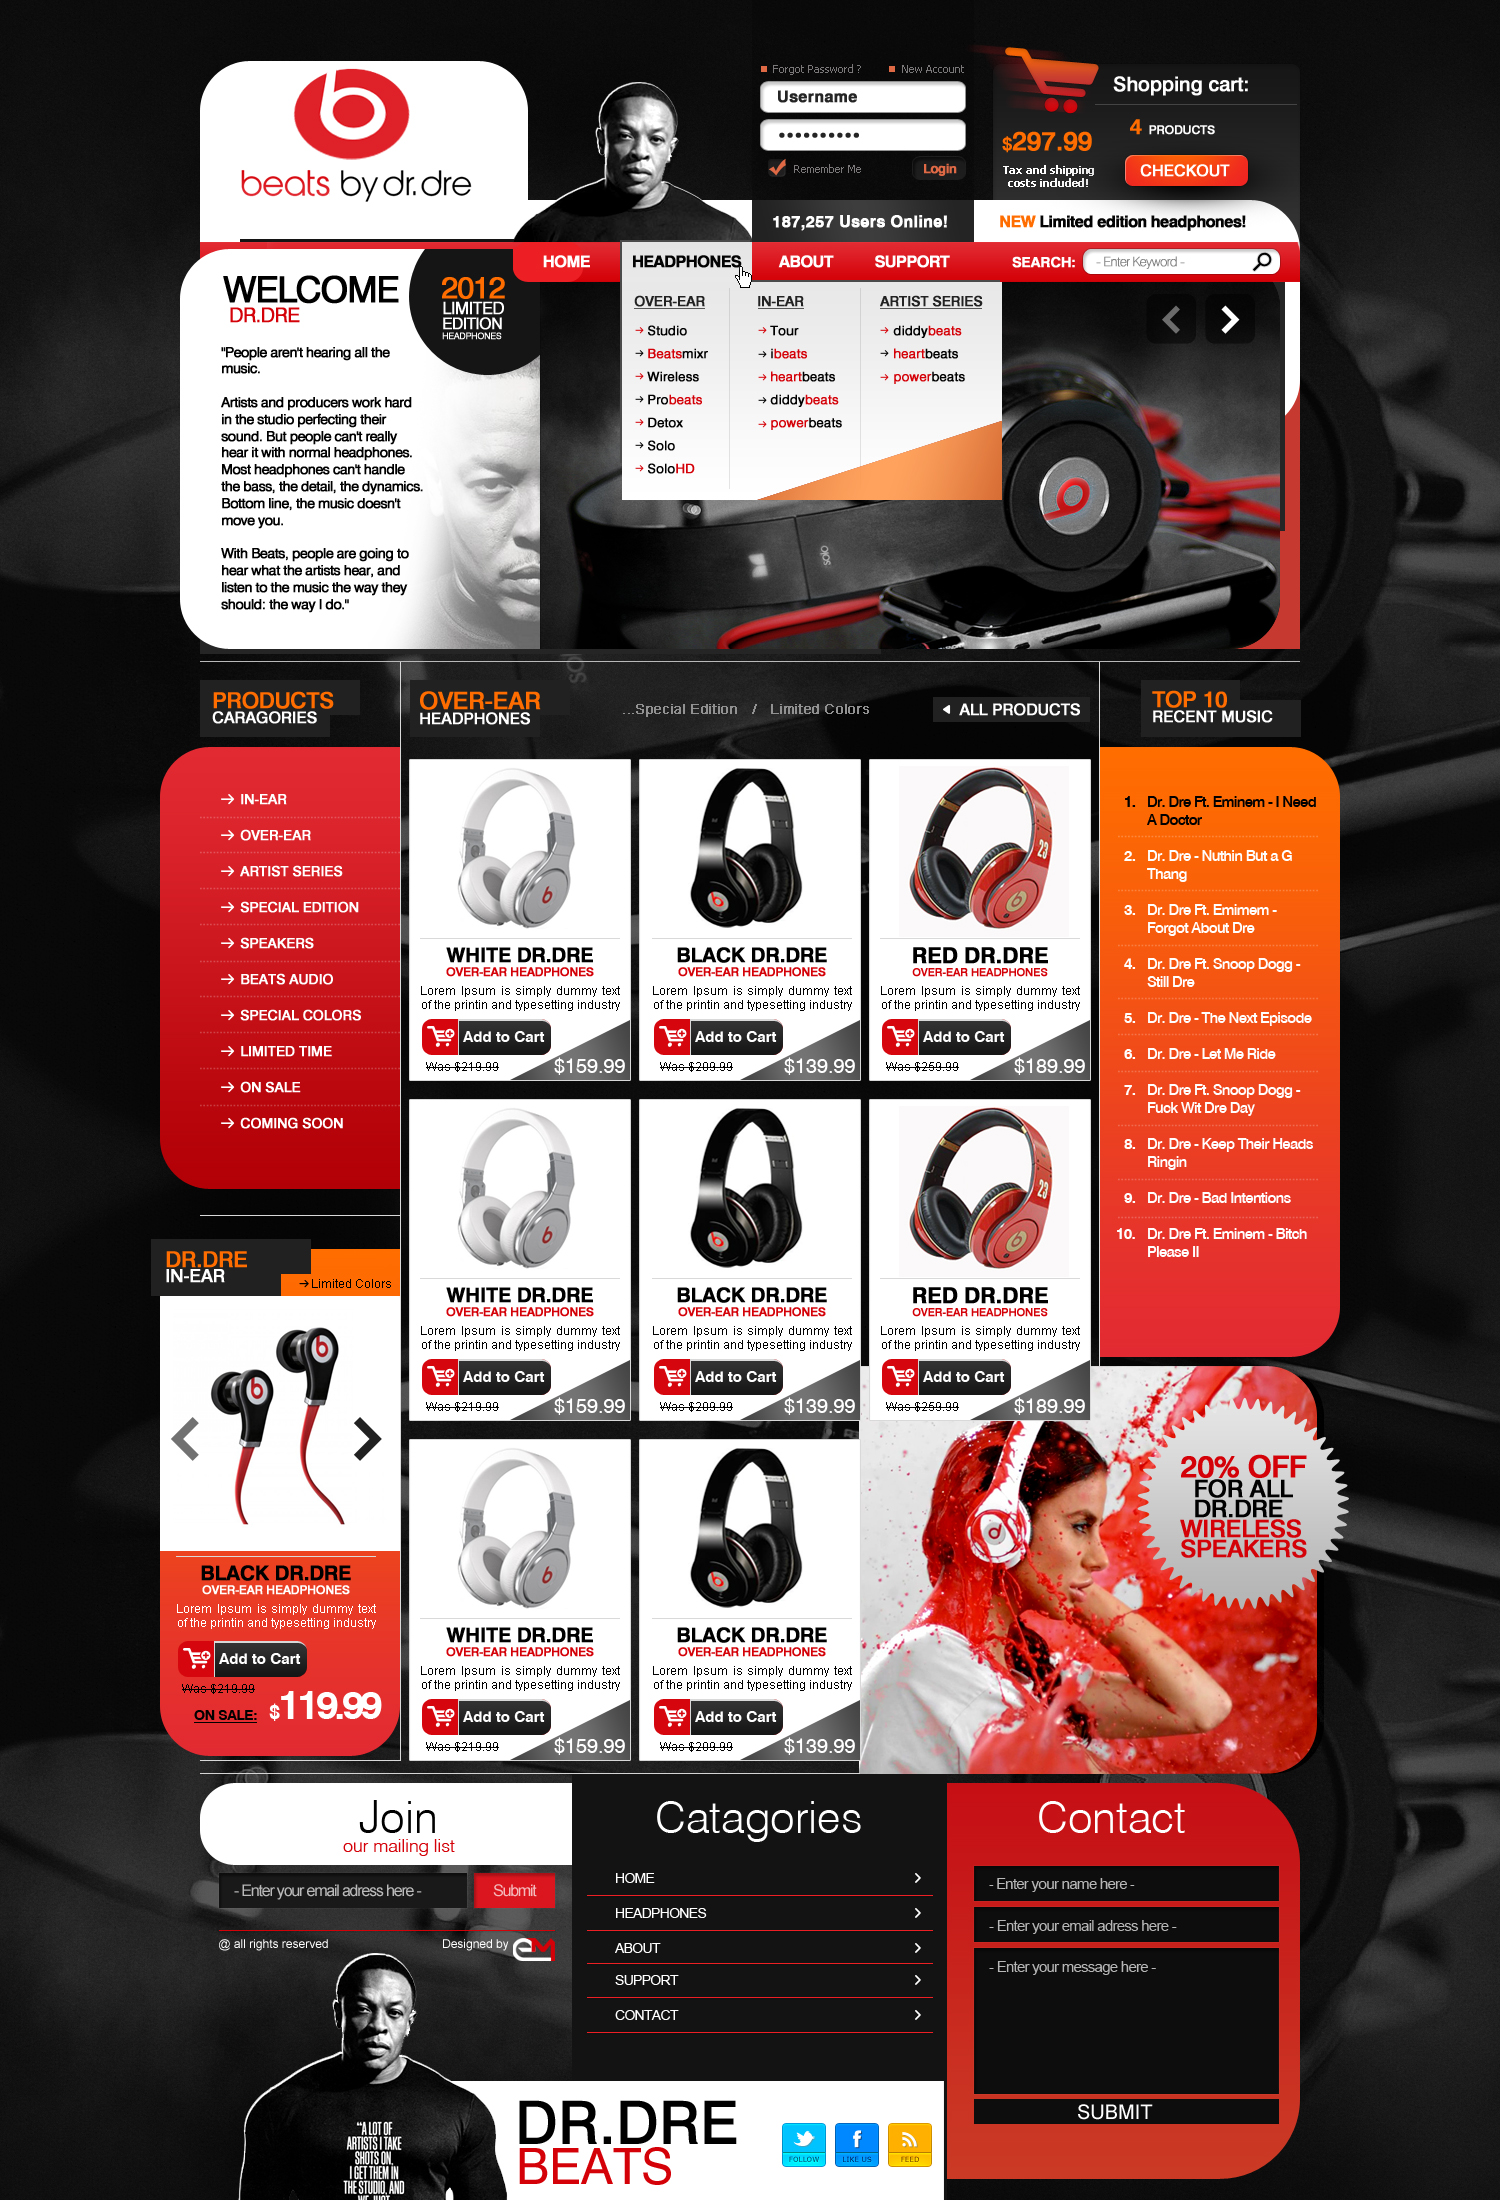 IMAGINARY Dr.Dre store website by Elad-M